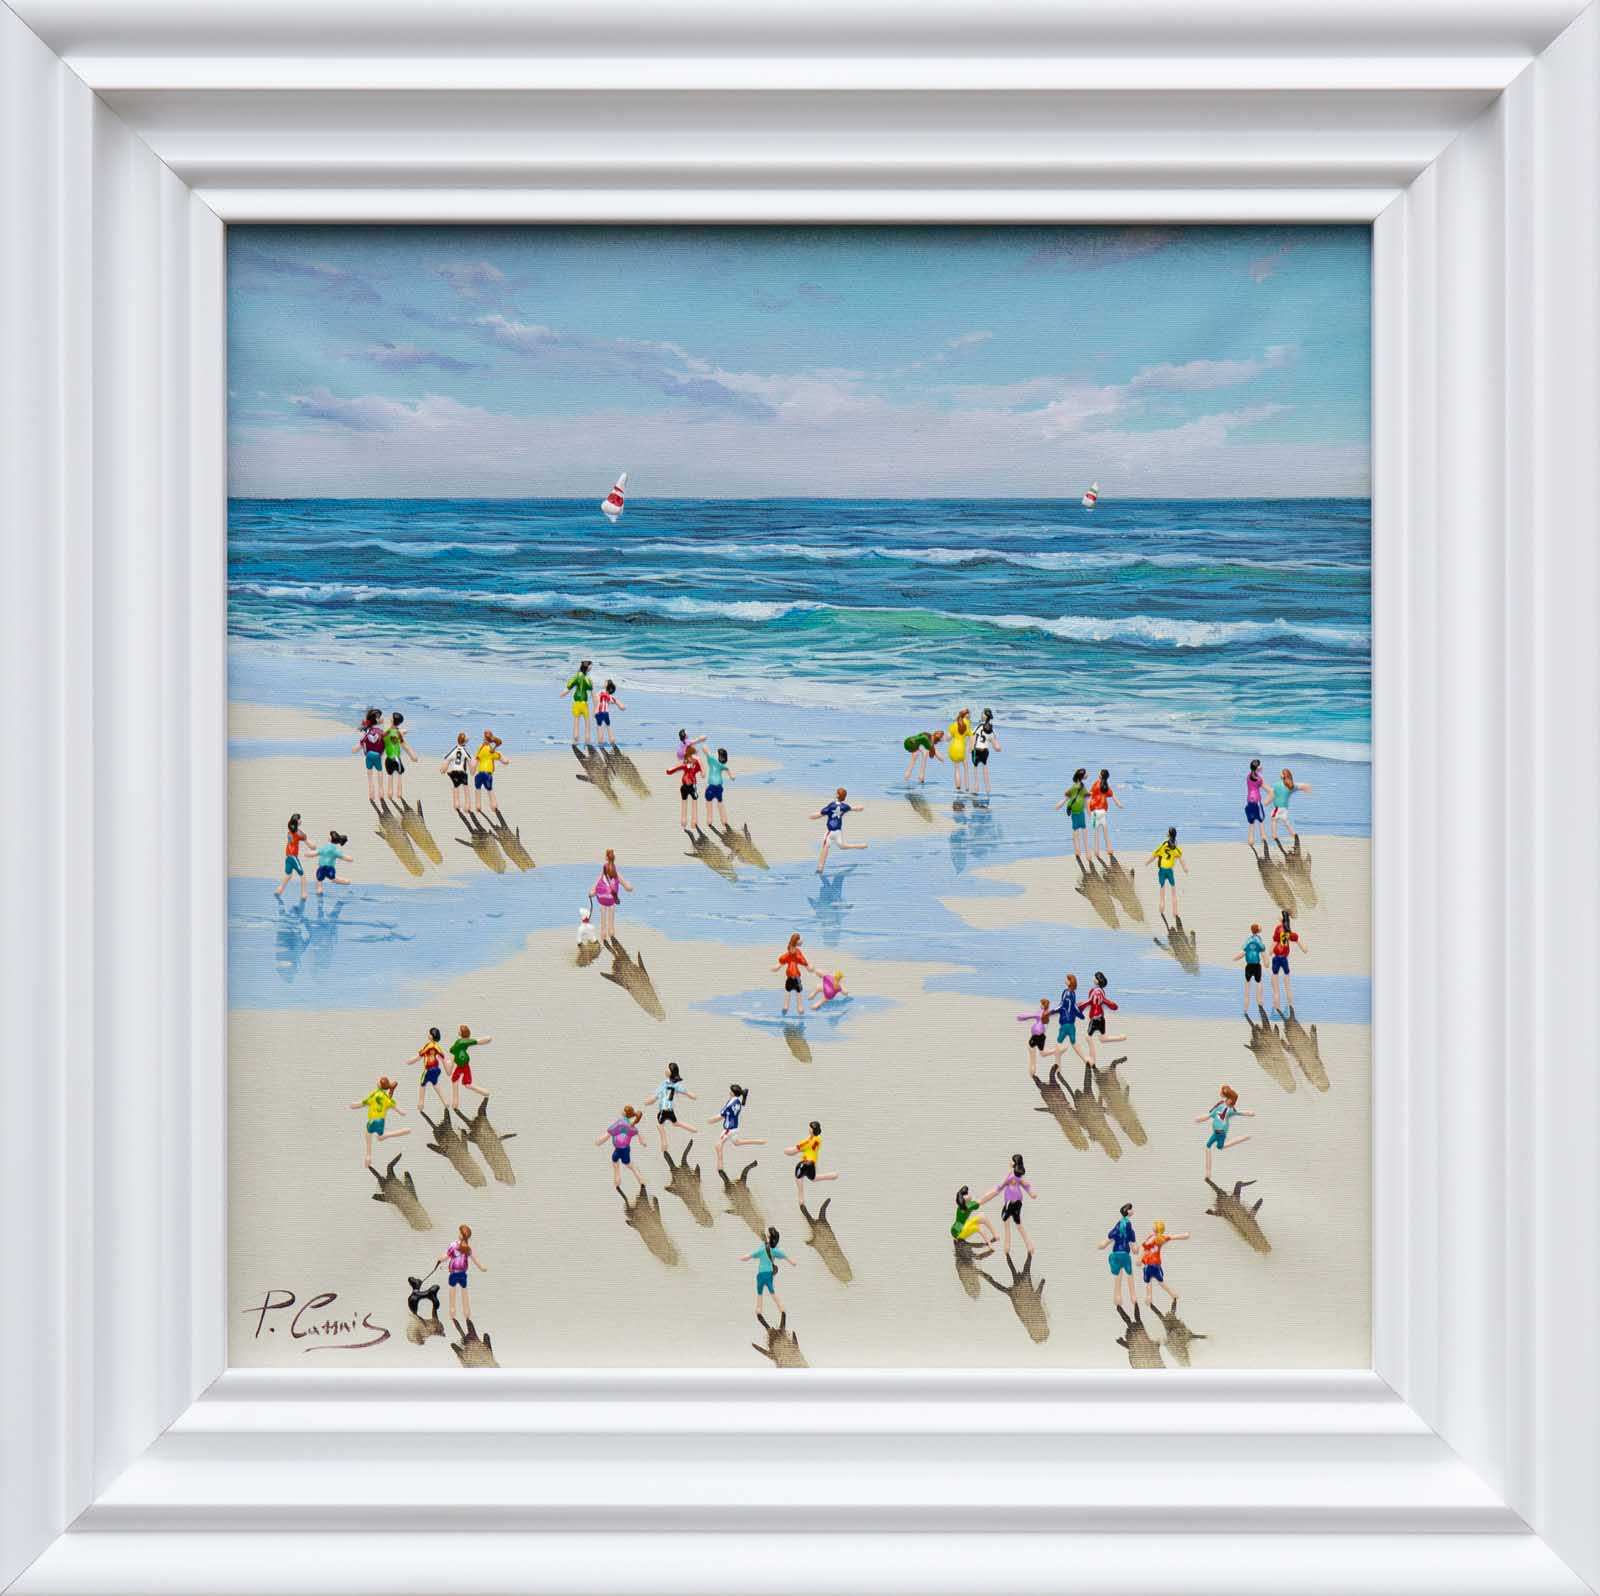 Playtime On The Beach, Paola Cassais